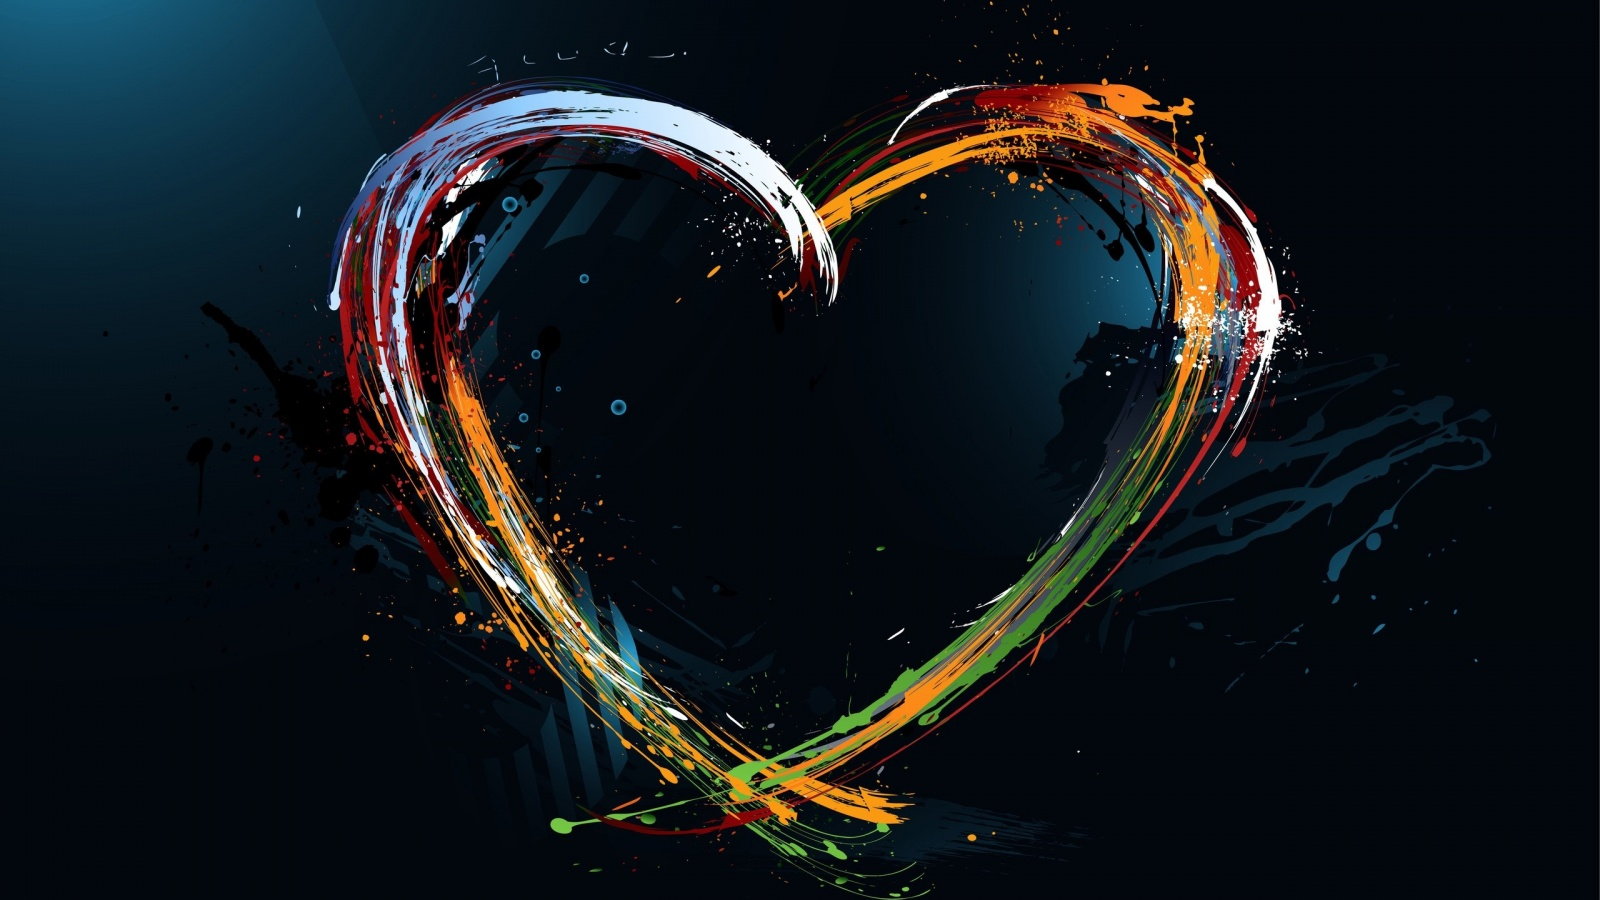 Love Hd Wallpapers Download For Android Mobile 1080p Full Hd Pic Of